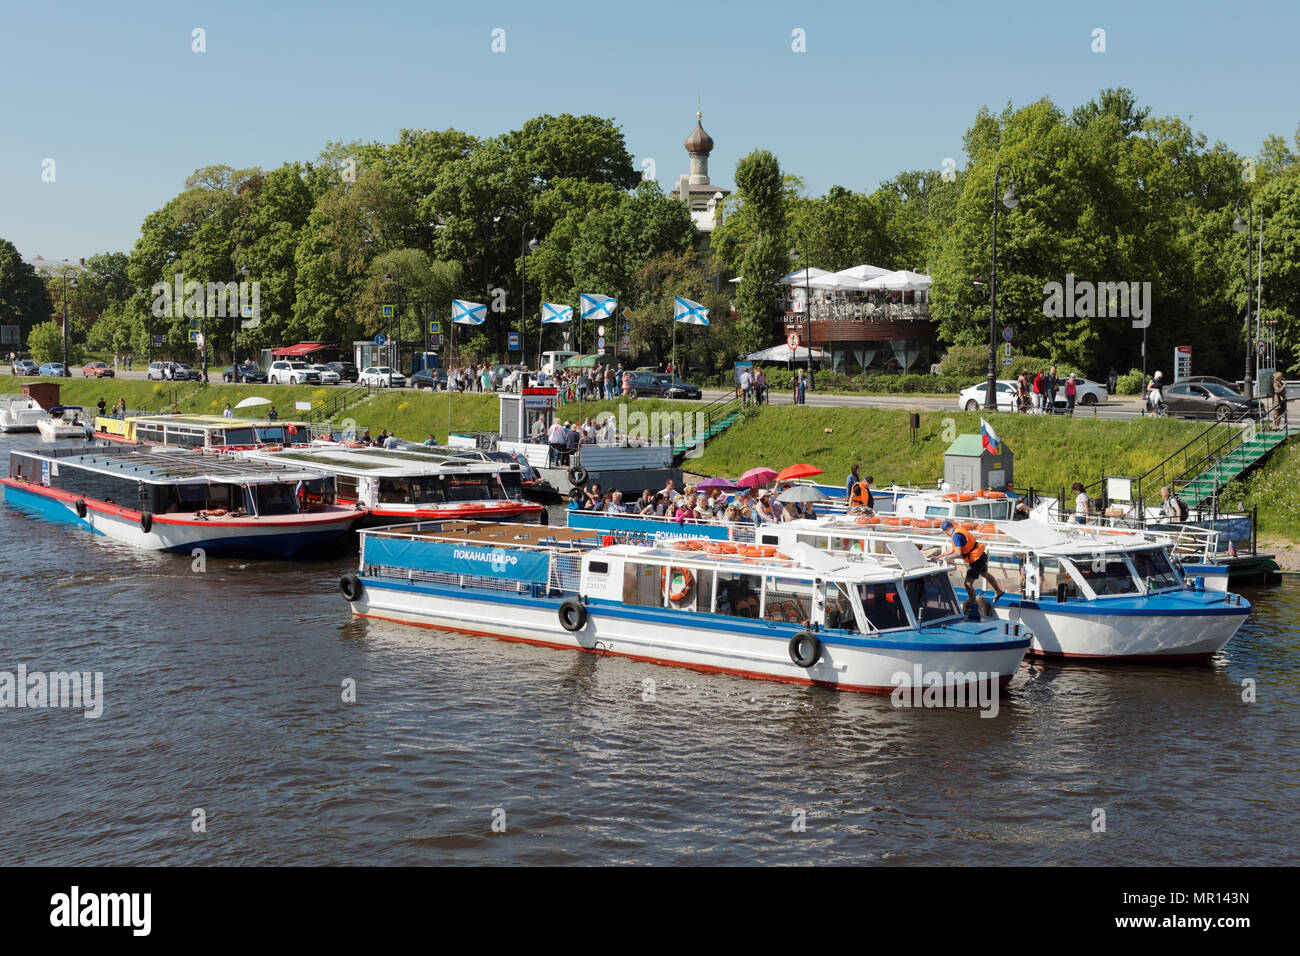 St. Petersburg, Russia, 25th May, 2018. People on tour boats at Zayachy island in the first day of school vacation. Boat tours is a favorite leisure activity for locals and tourists, children and adults - Stock Image